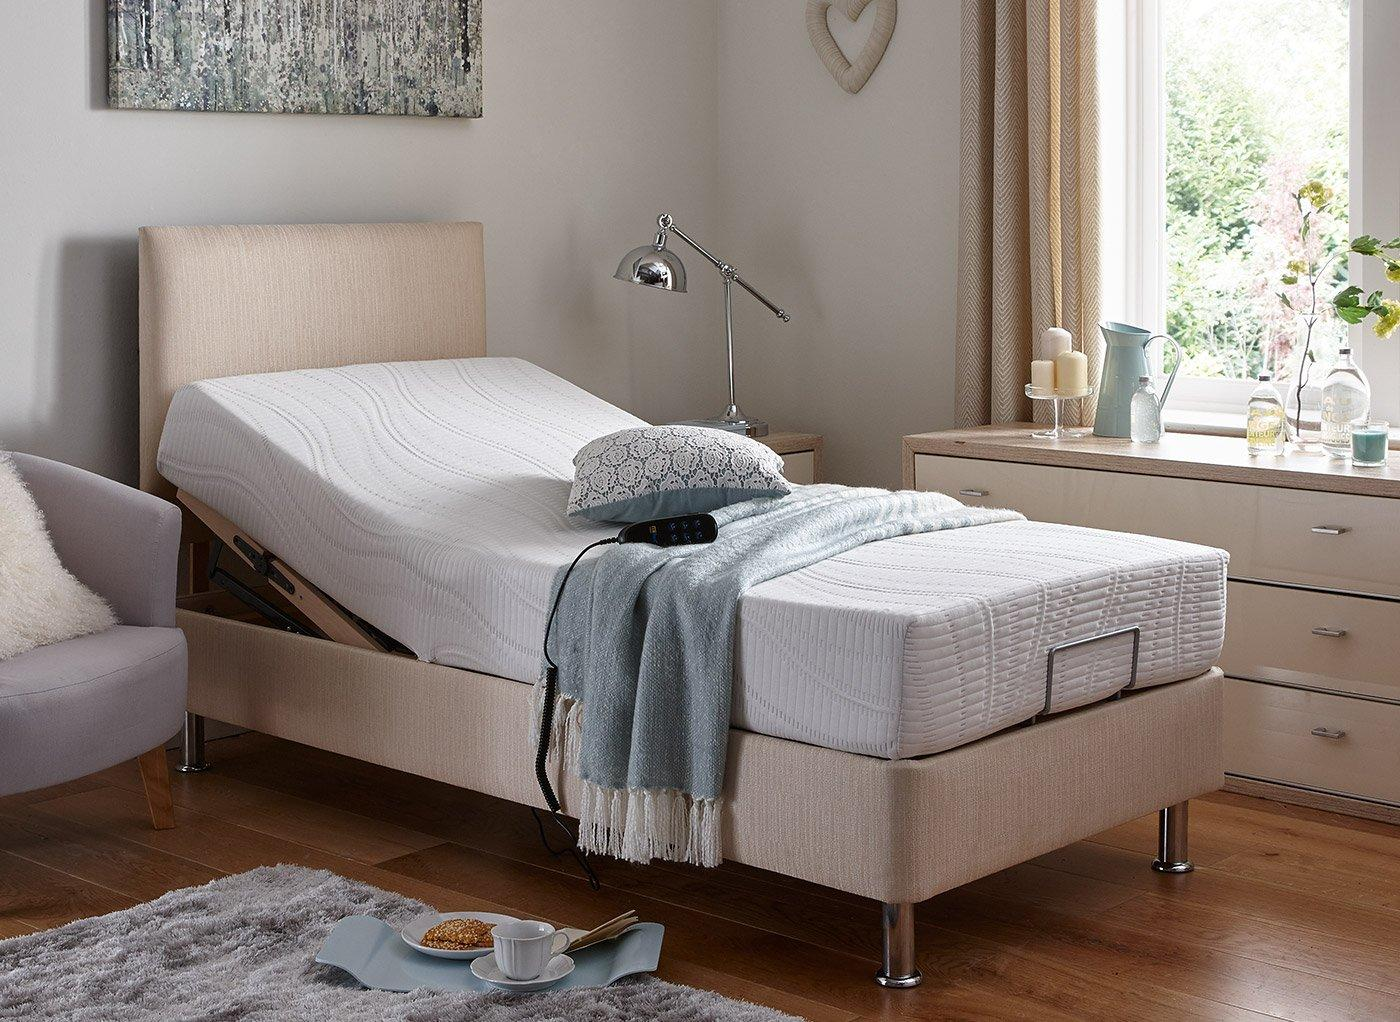 Fontwell Mattress With Standard Oatmeal Adjustable Divan Bed On Legs - Firm 2'6 Small single BEIGE